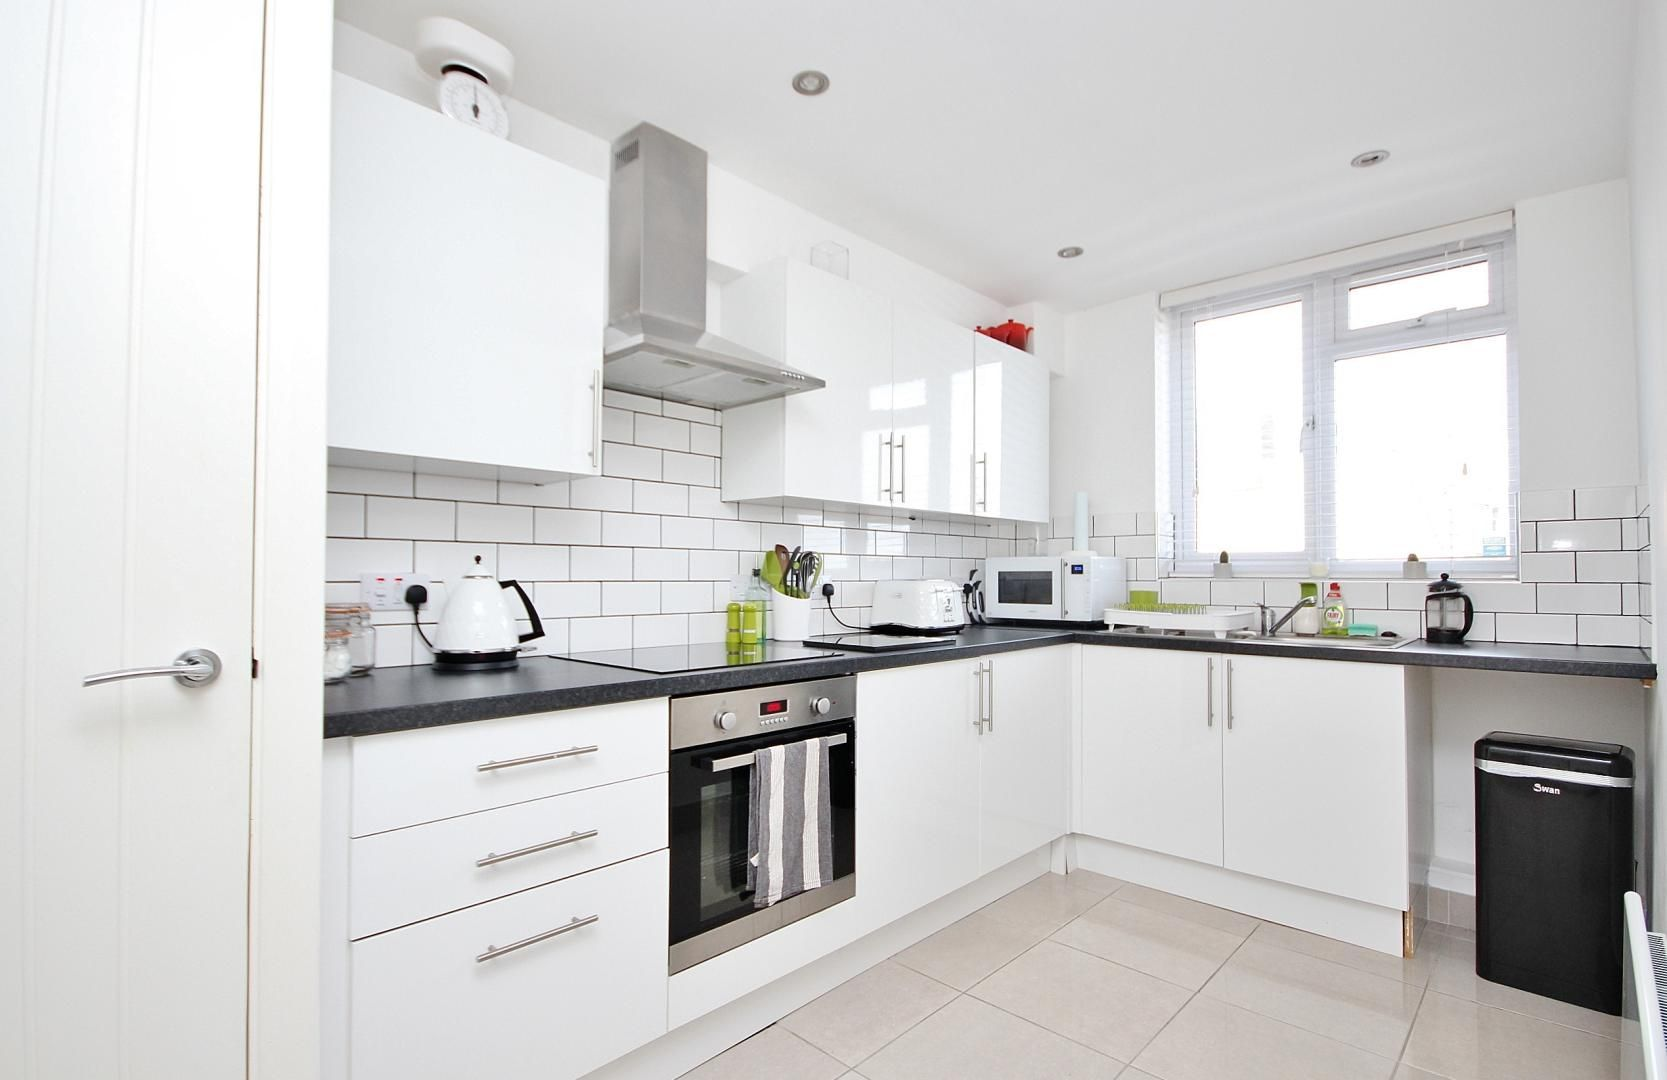 2 bed flat to rent in E1 Studios, E1